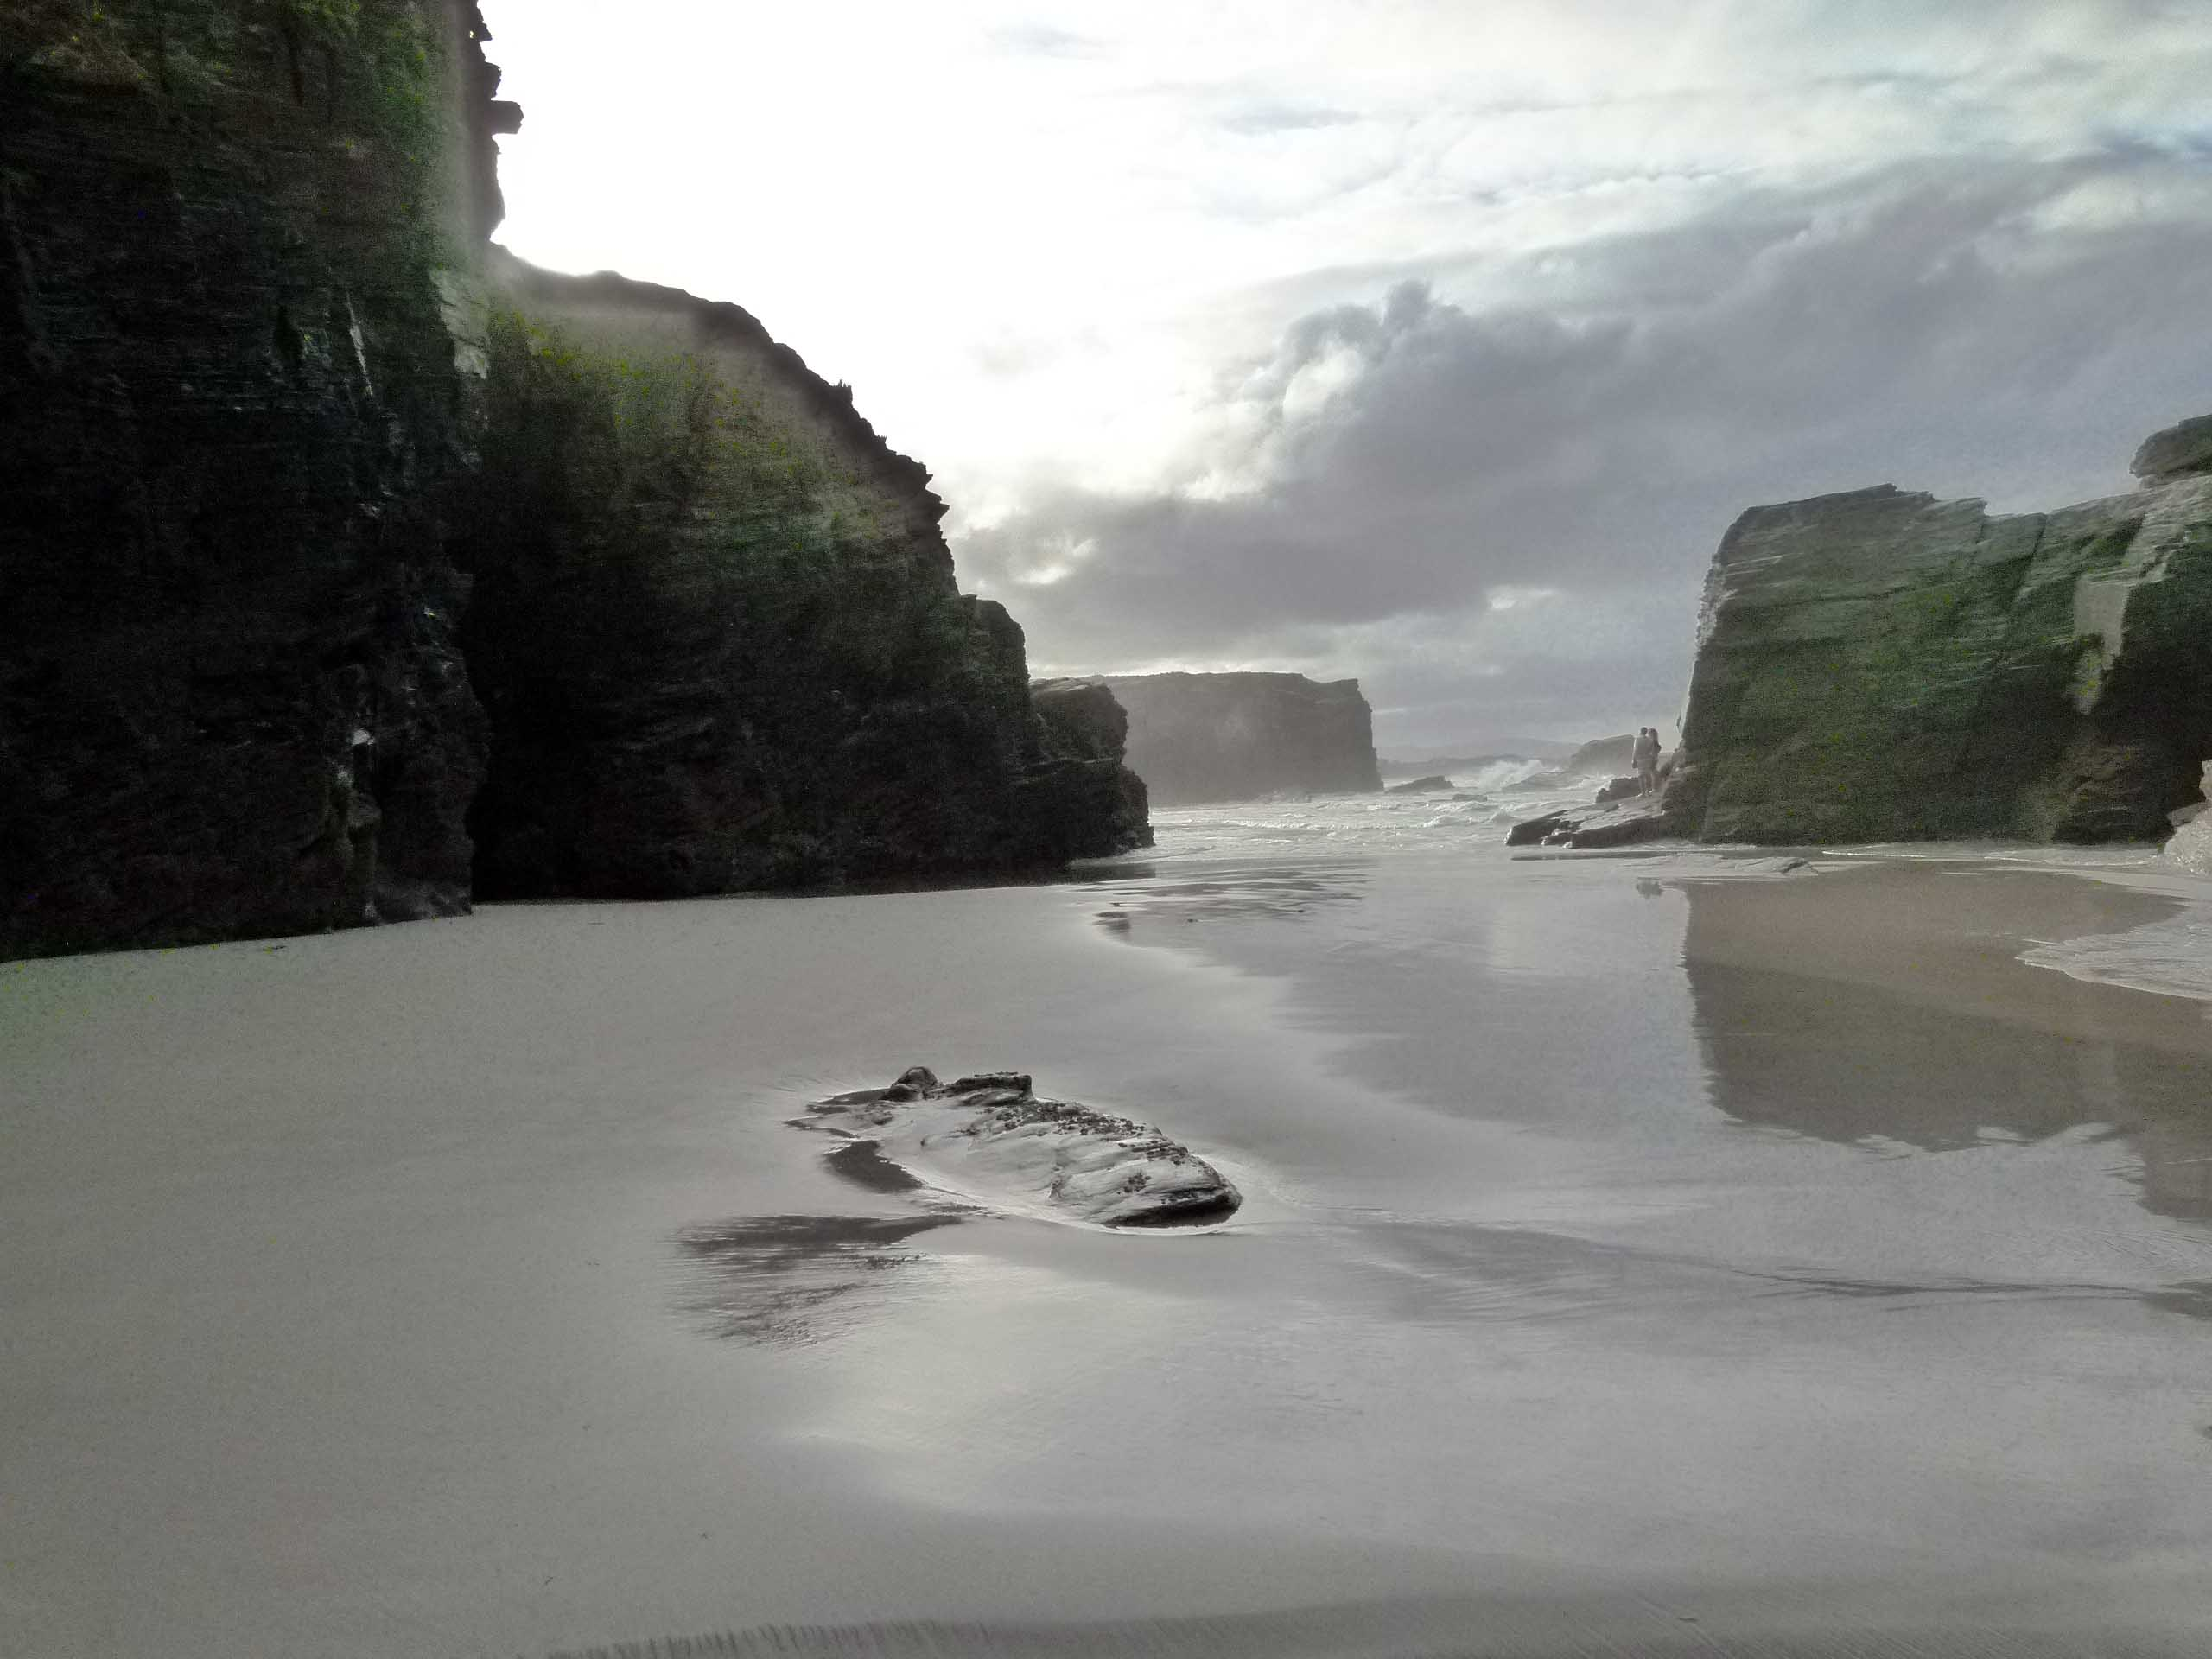 playa catedrales